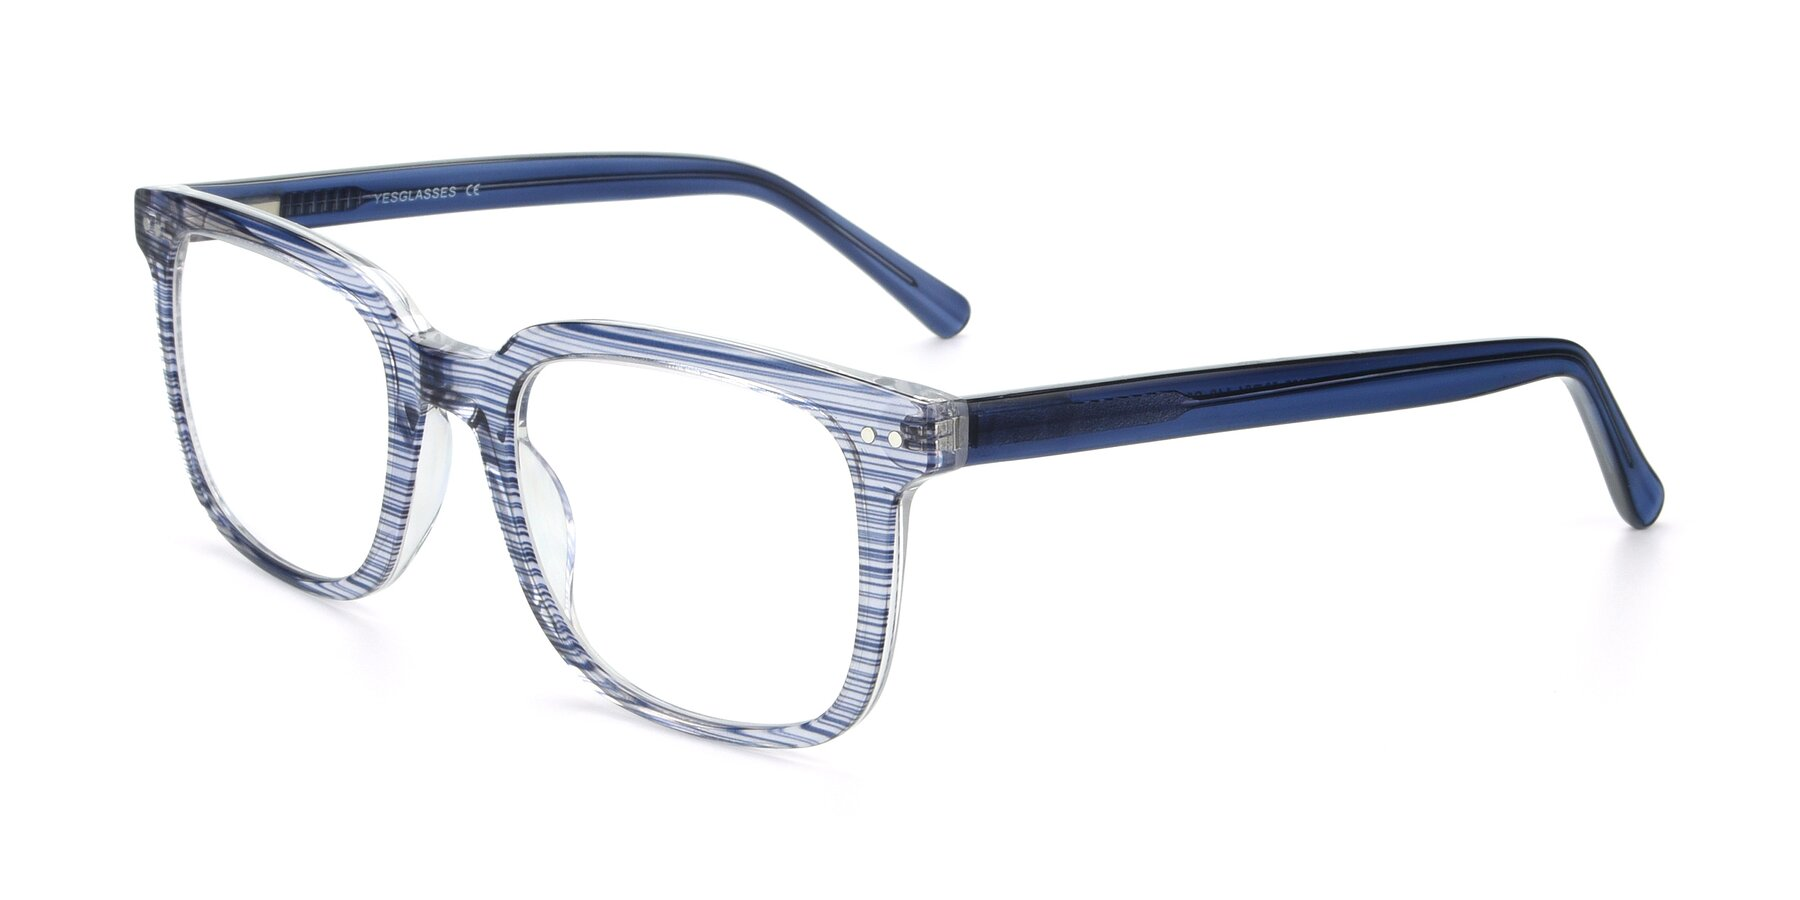 Angle of 17457 in Stripe Blue with Clear Blue Light Blocking Lenses